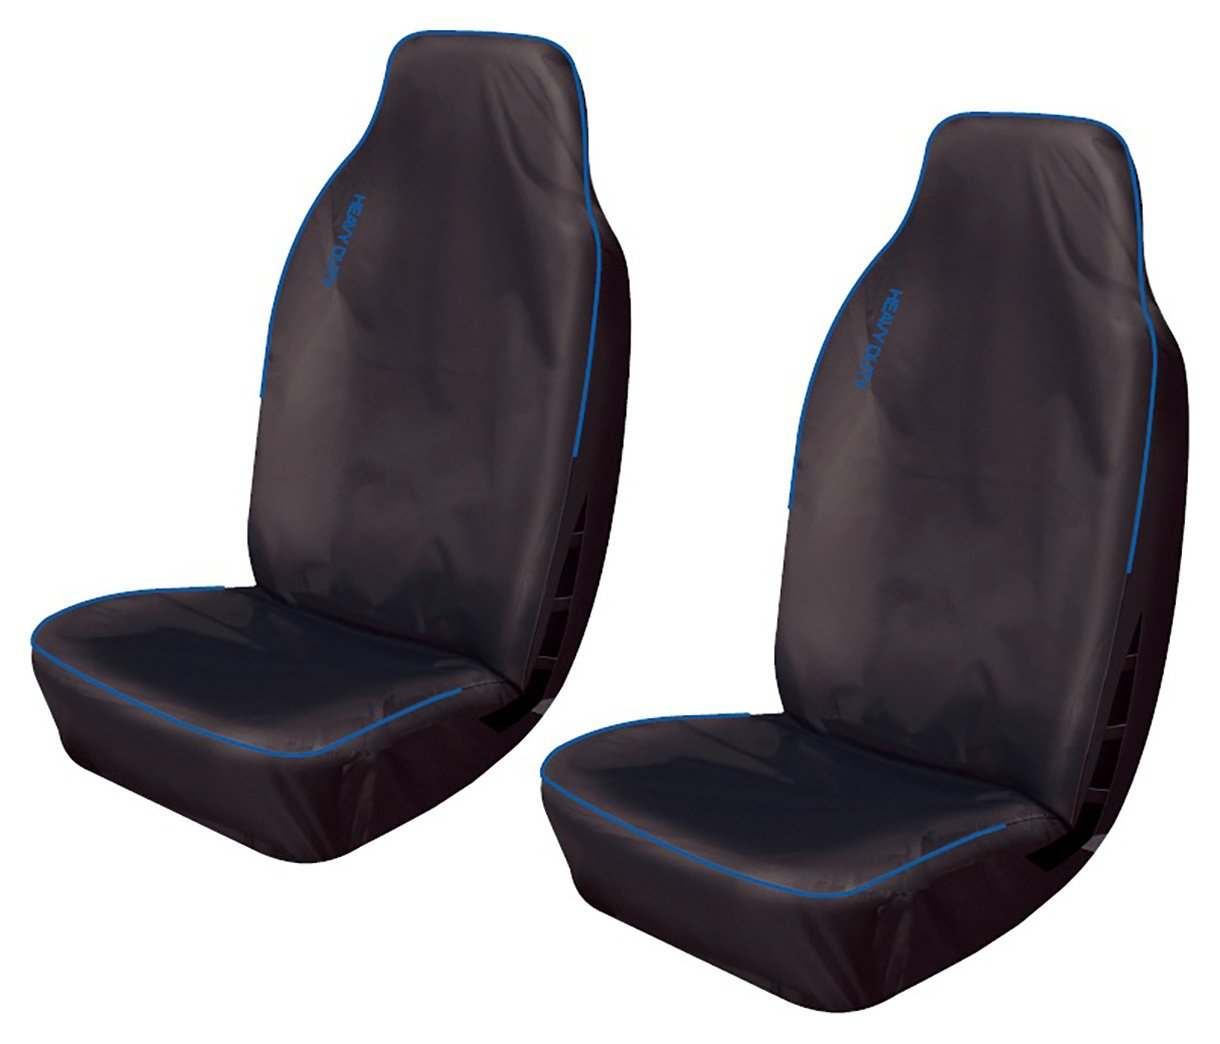 Image of Cosmos - Heavy Duty Sport Front Car Seat Covers x2 - Blue